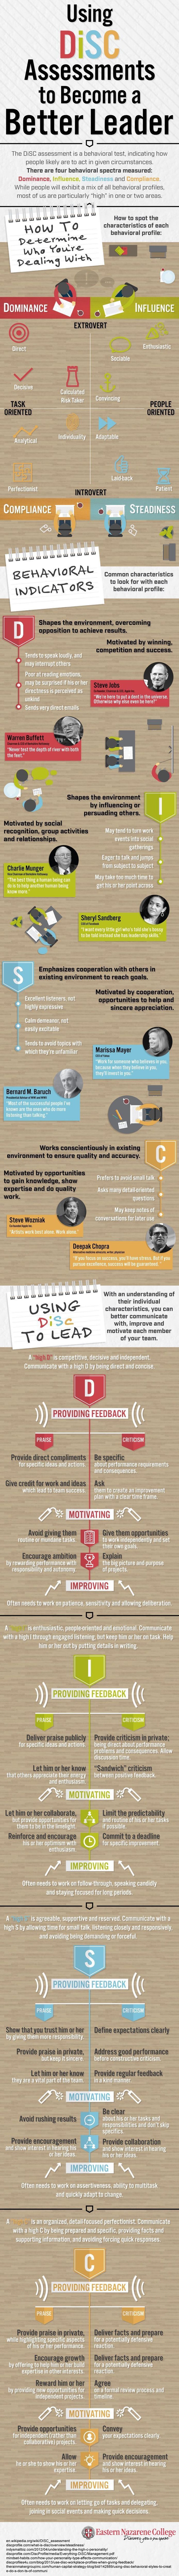 "Career infographic : Learn How to Lead Different Types of Individuals With the ""DiSC"" System"